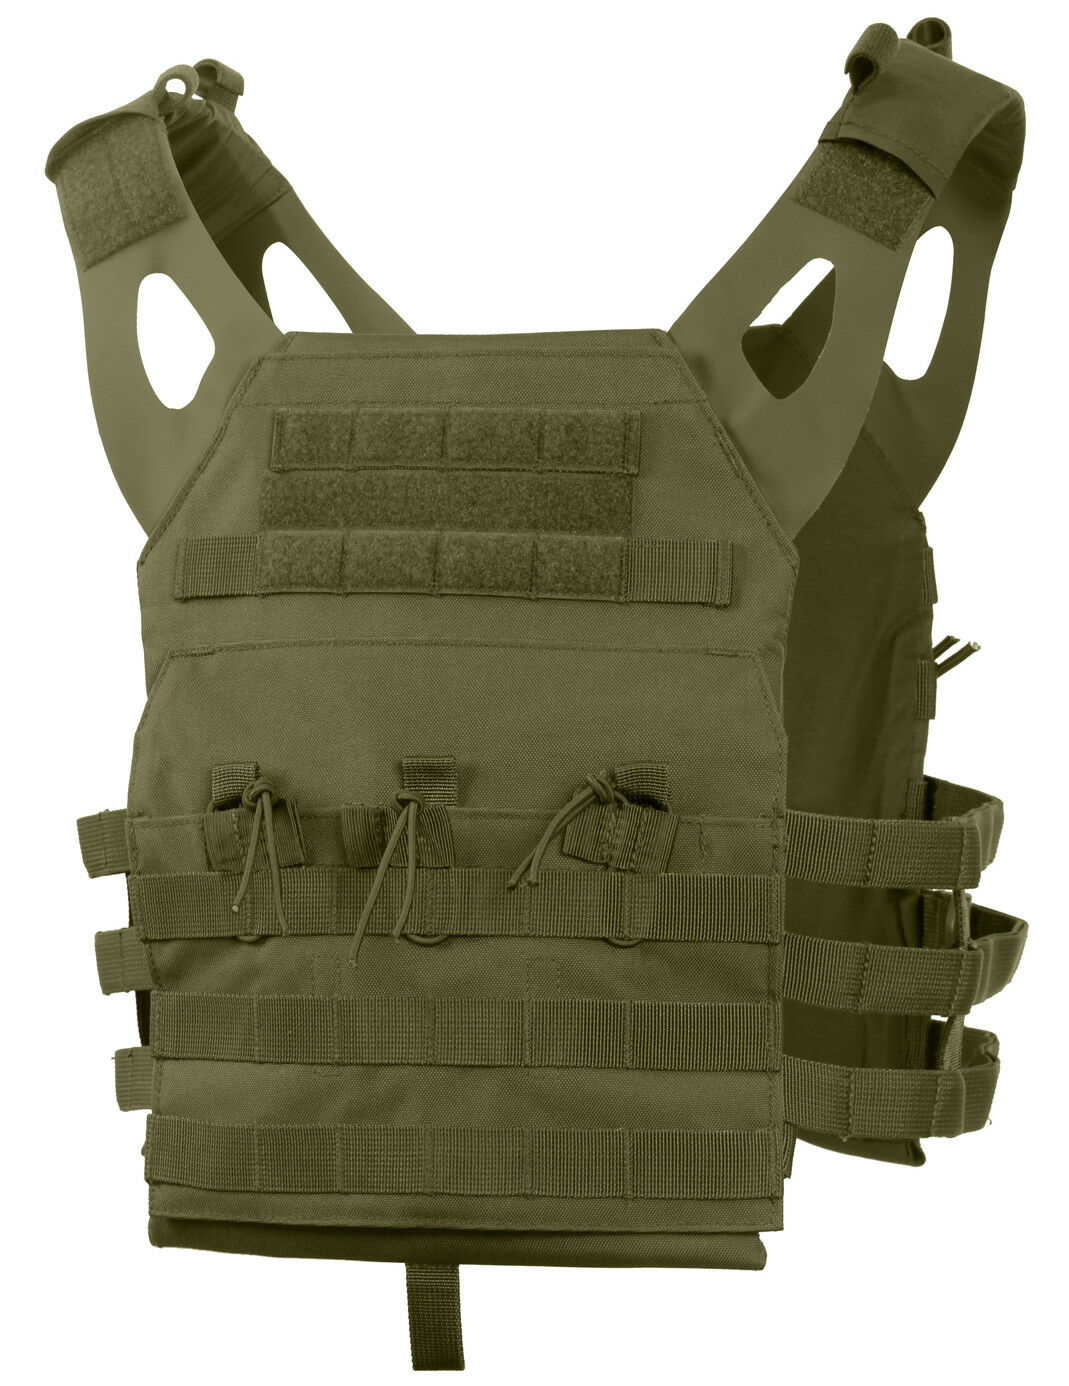 Tactical Light Weight Plate Carrier Vest Modular Olive Drab Molle redhco 55894